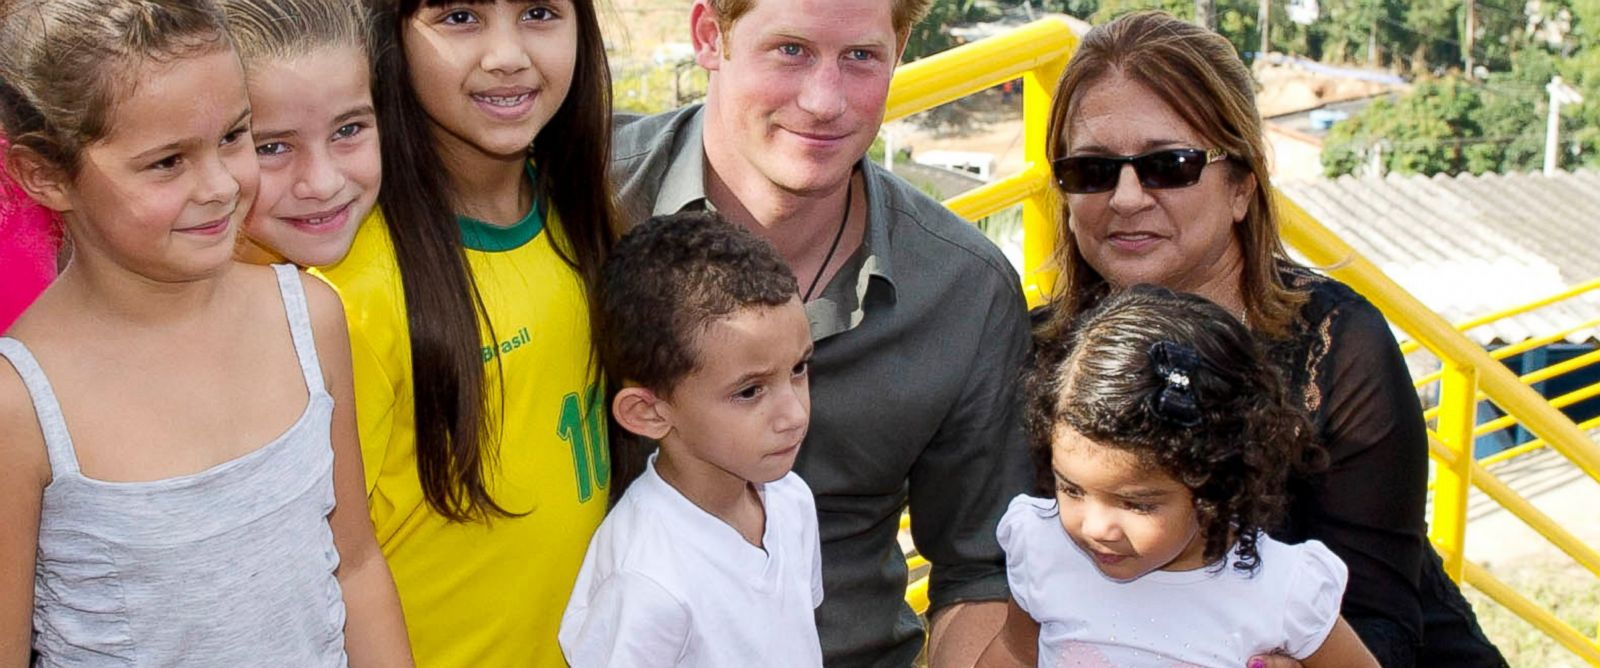 PHOTO: Prince Harry poses with local children from a village during a trip to Brazil